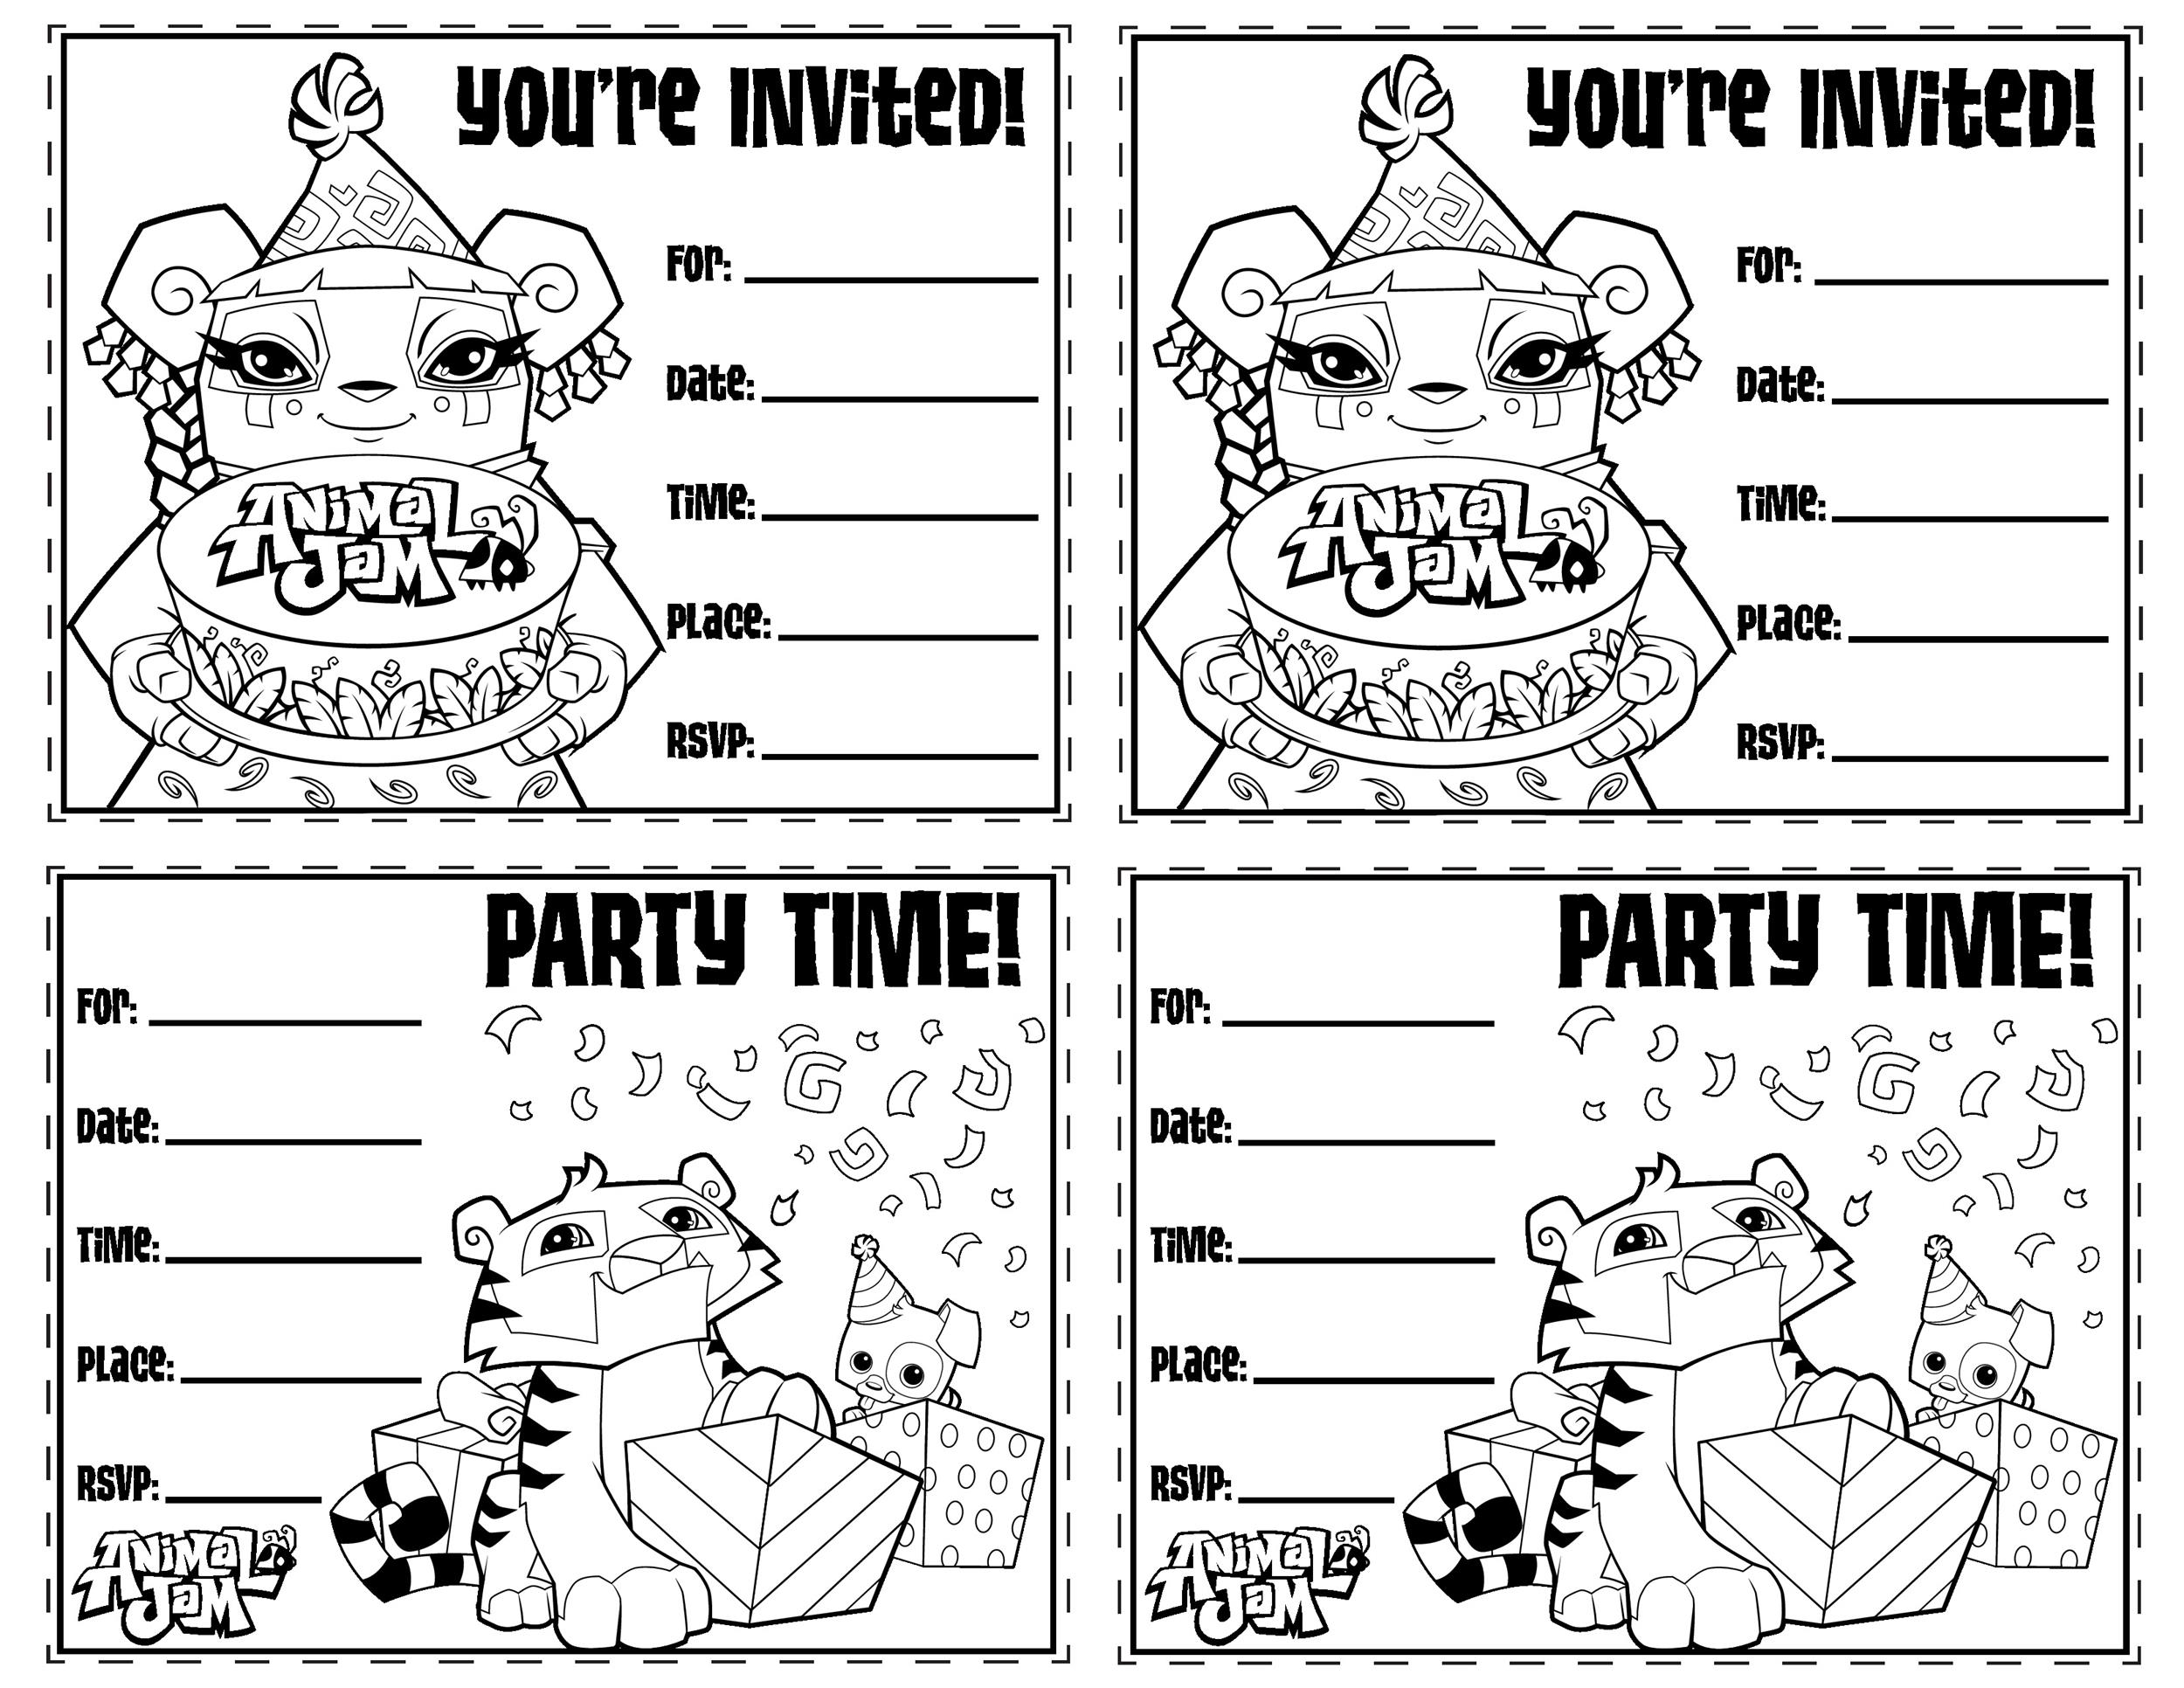 Free Birthday Party Invitation Templates Template Lab - Free templates for birthday invitations